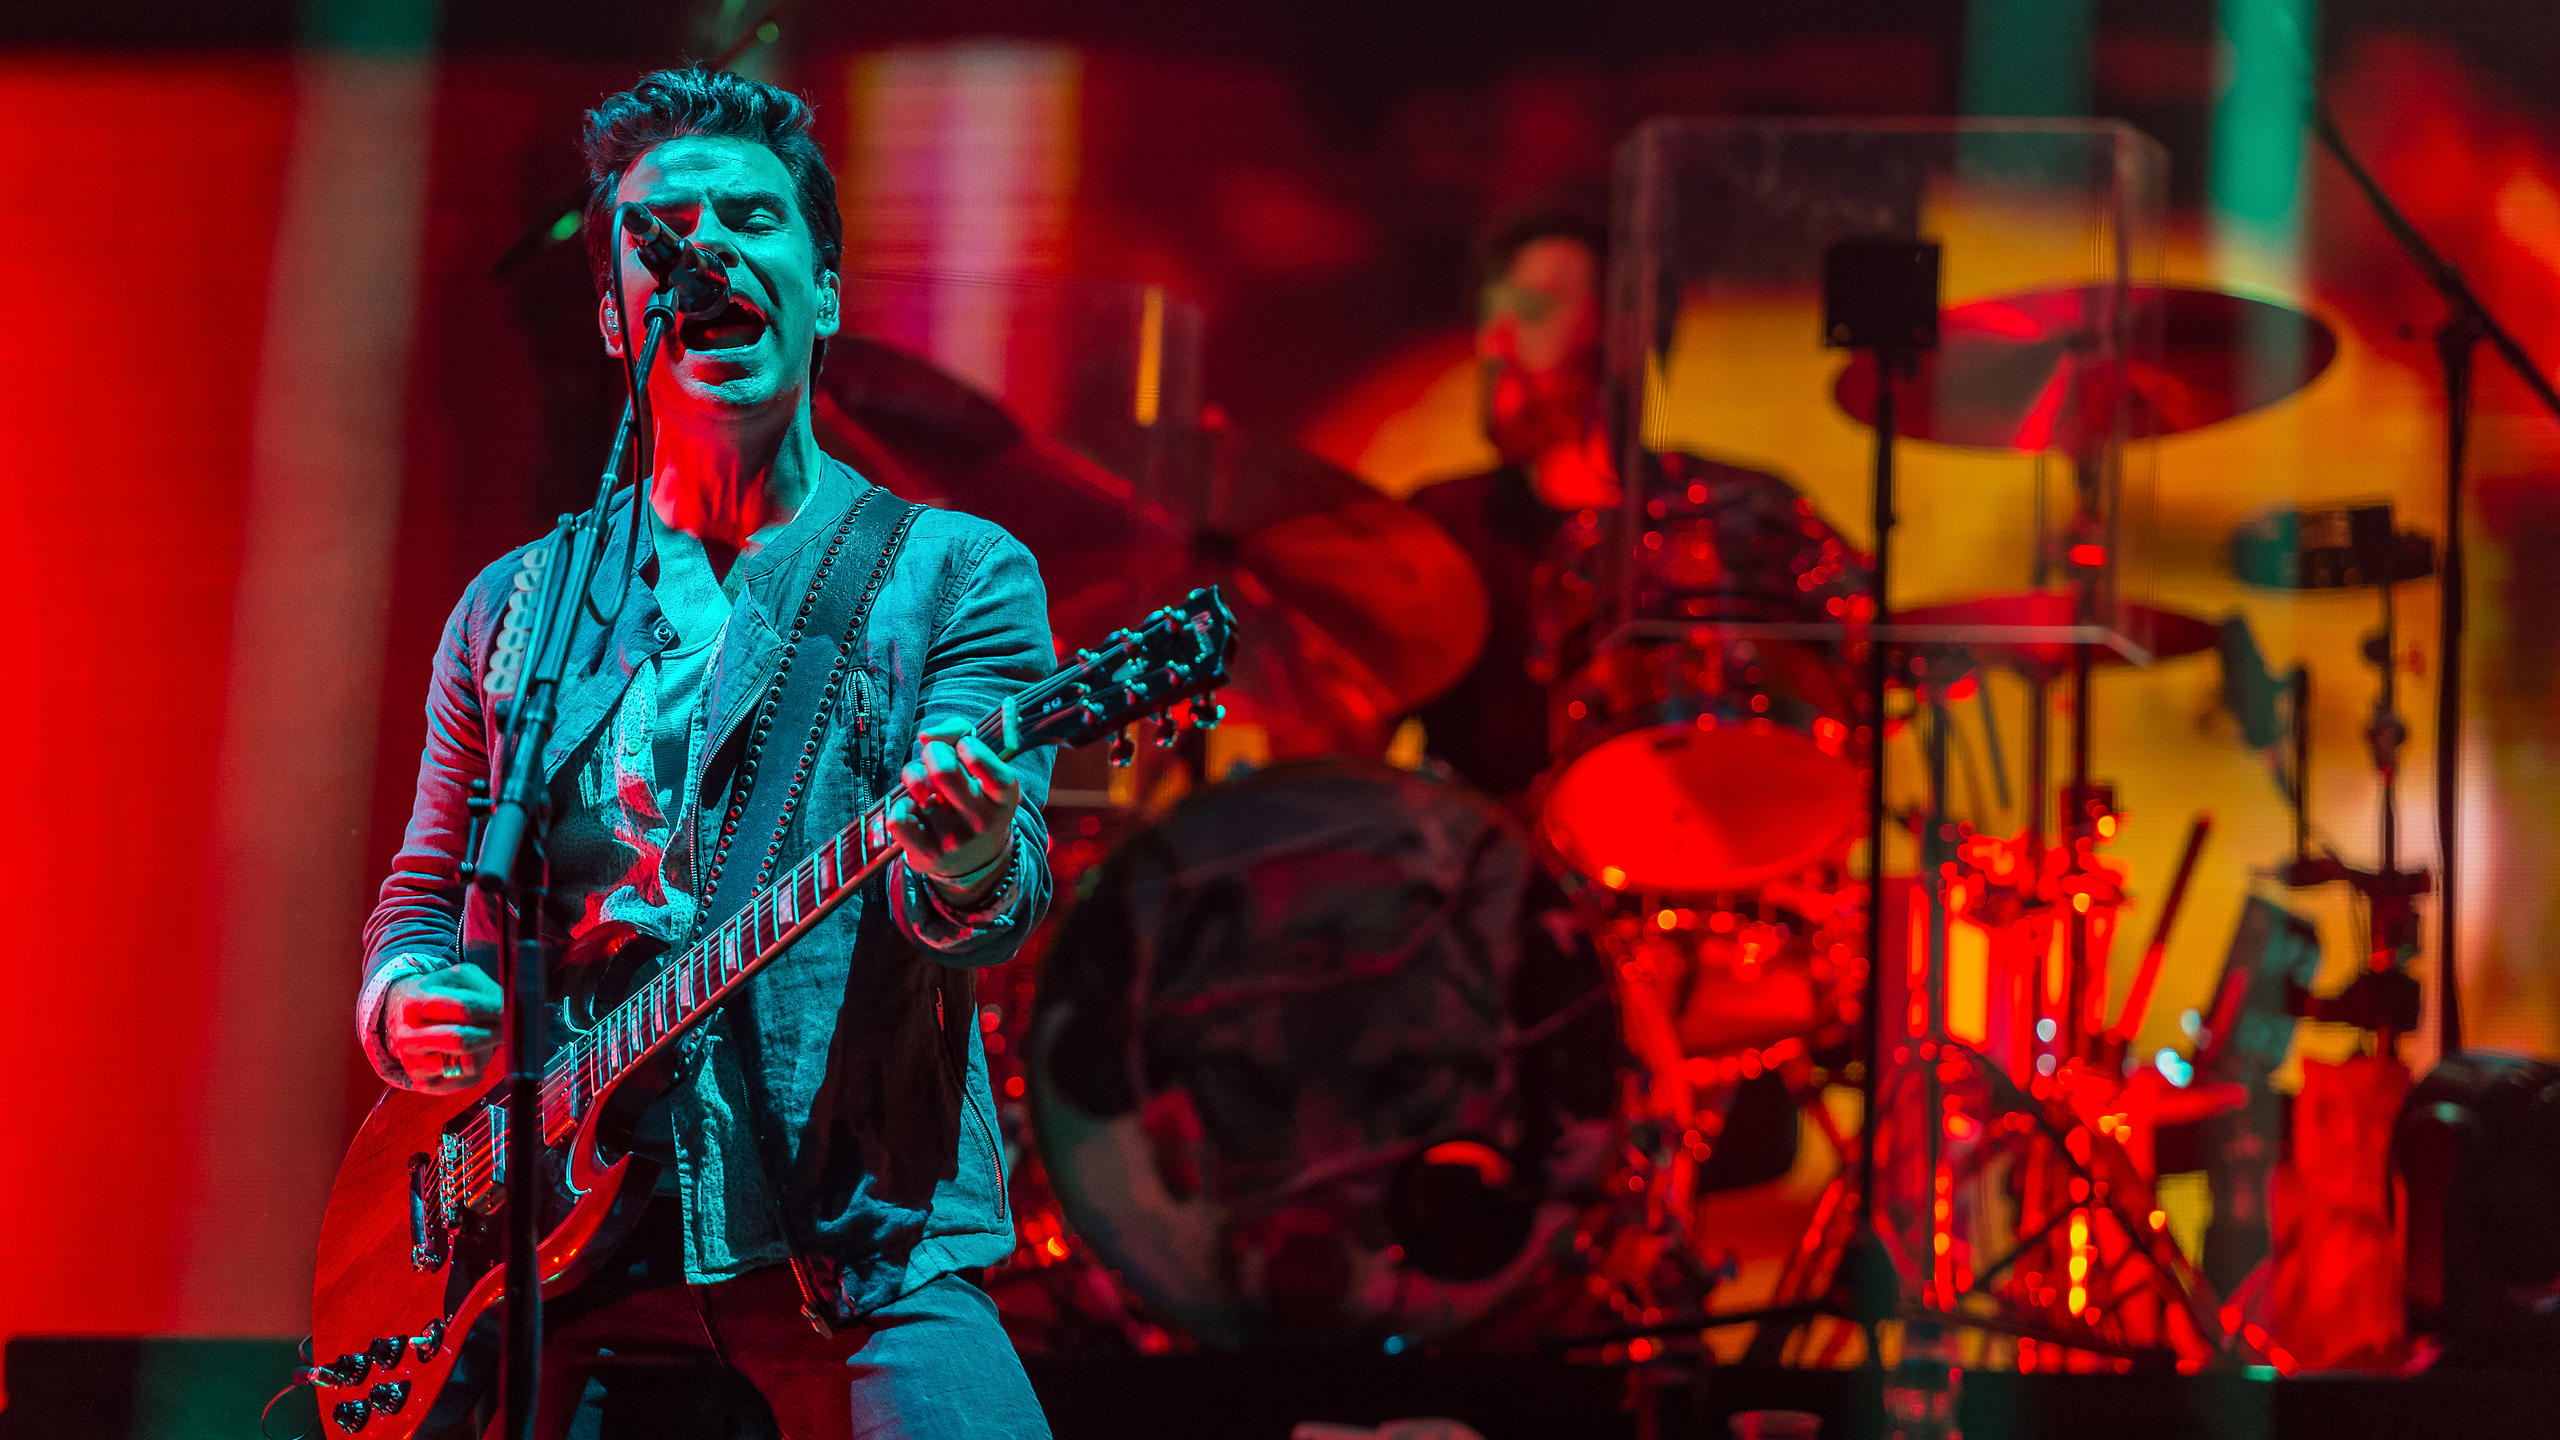 Stereophonics Headlining Saturday on the Main Stage at Victorious Festival 2017